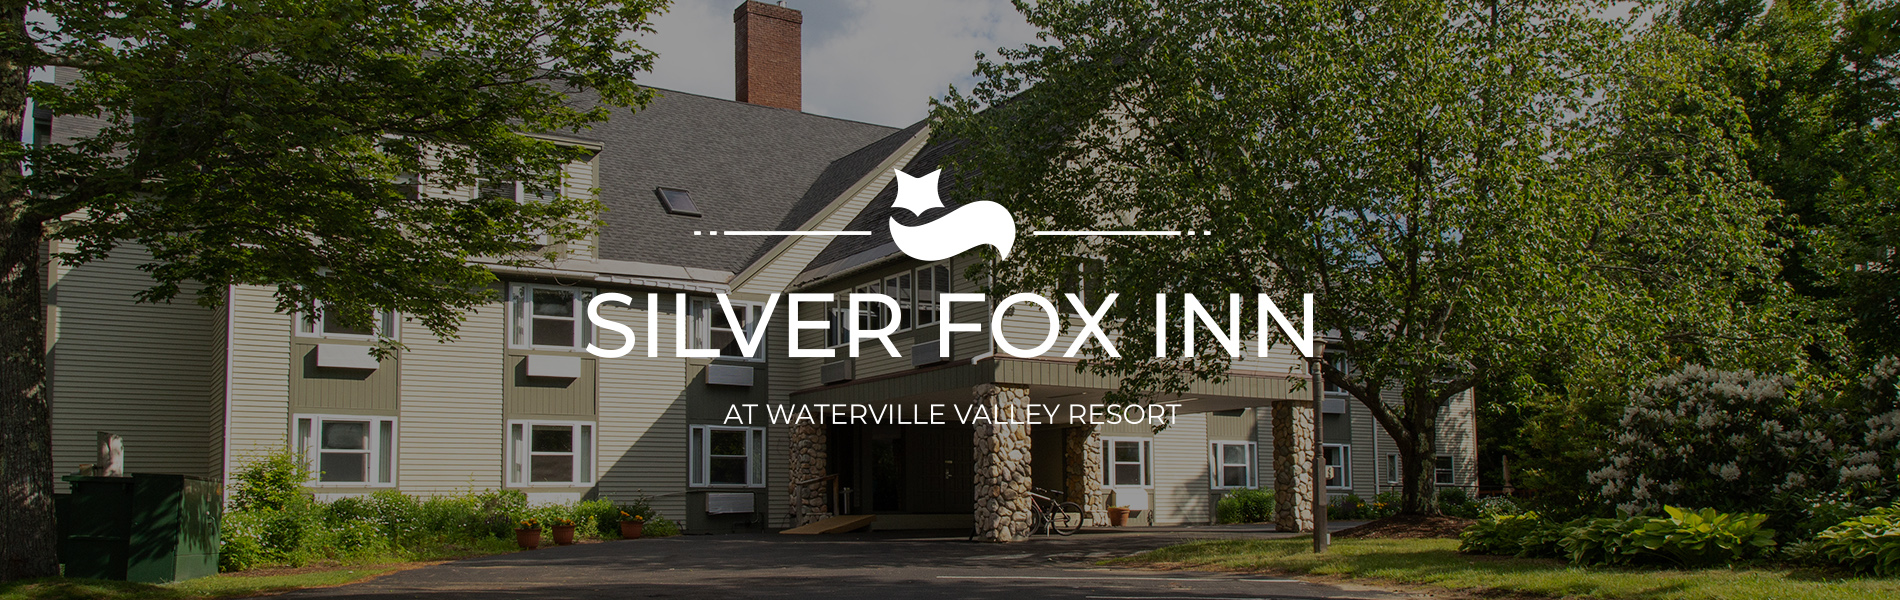 Silver Fox Inn provides cozy accommodation in the heart of the White Mountains.